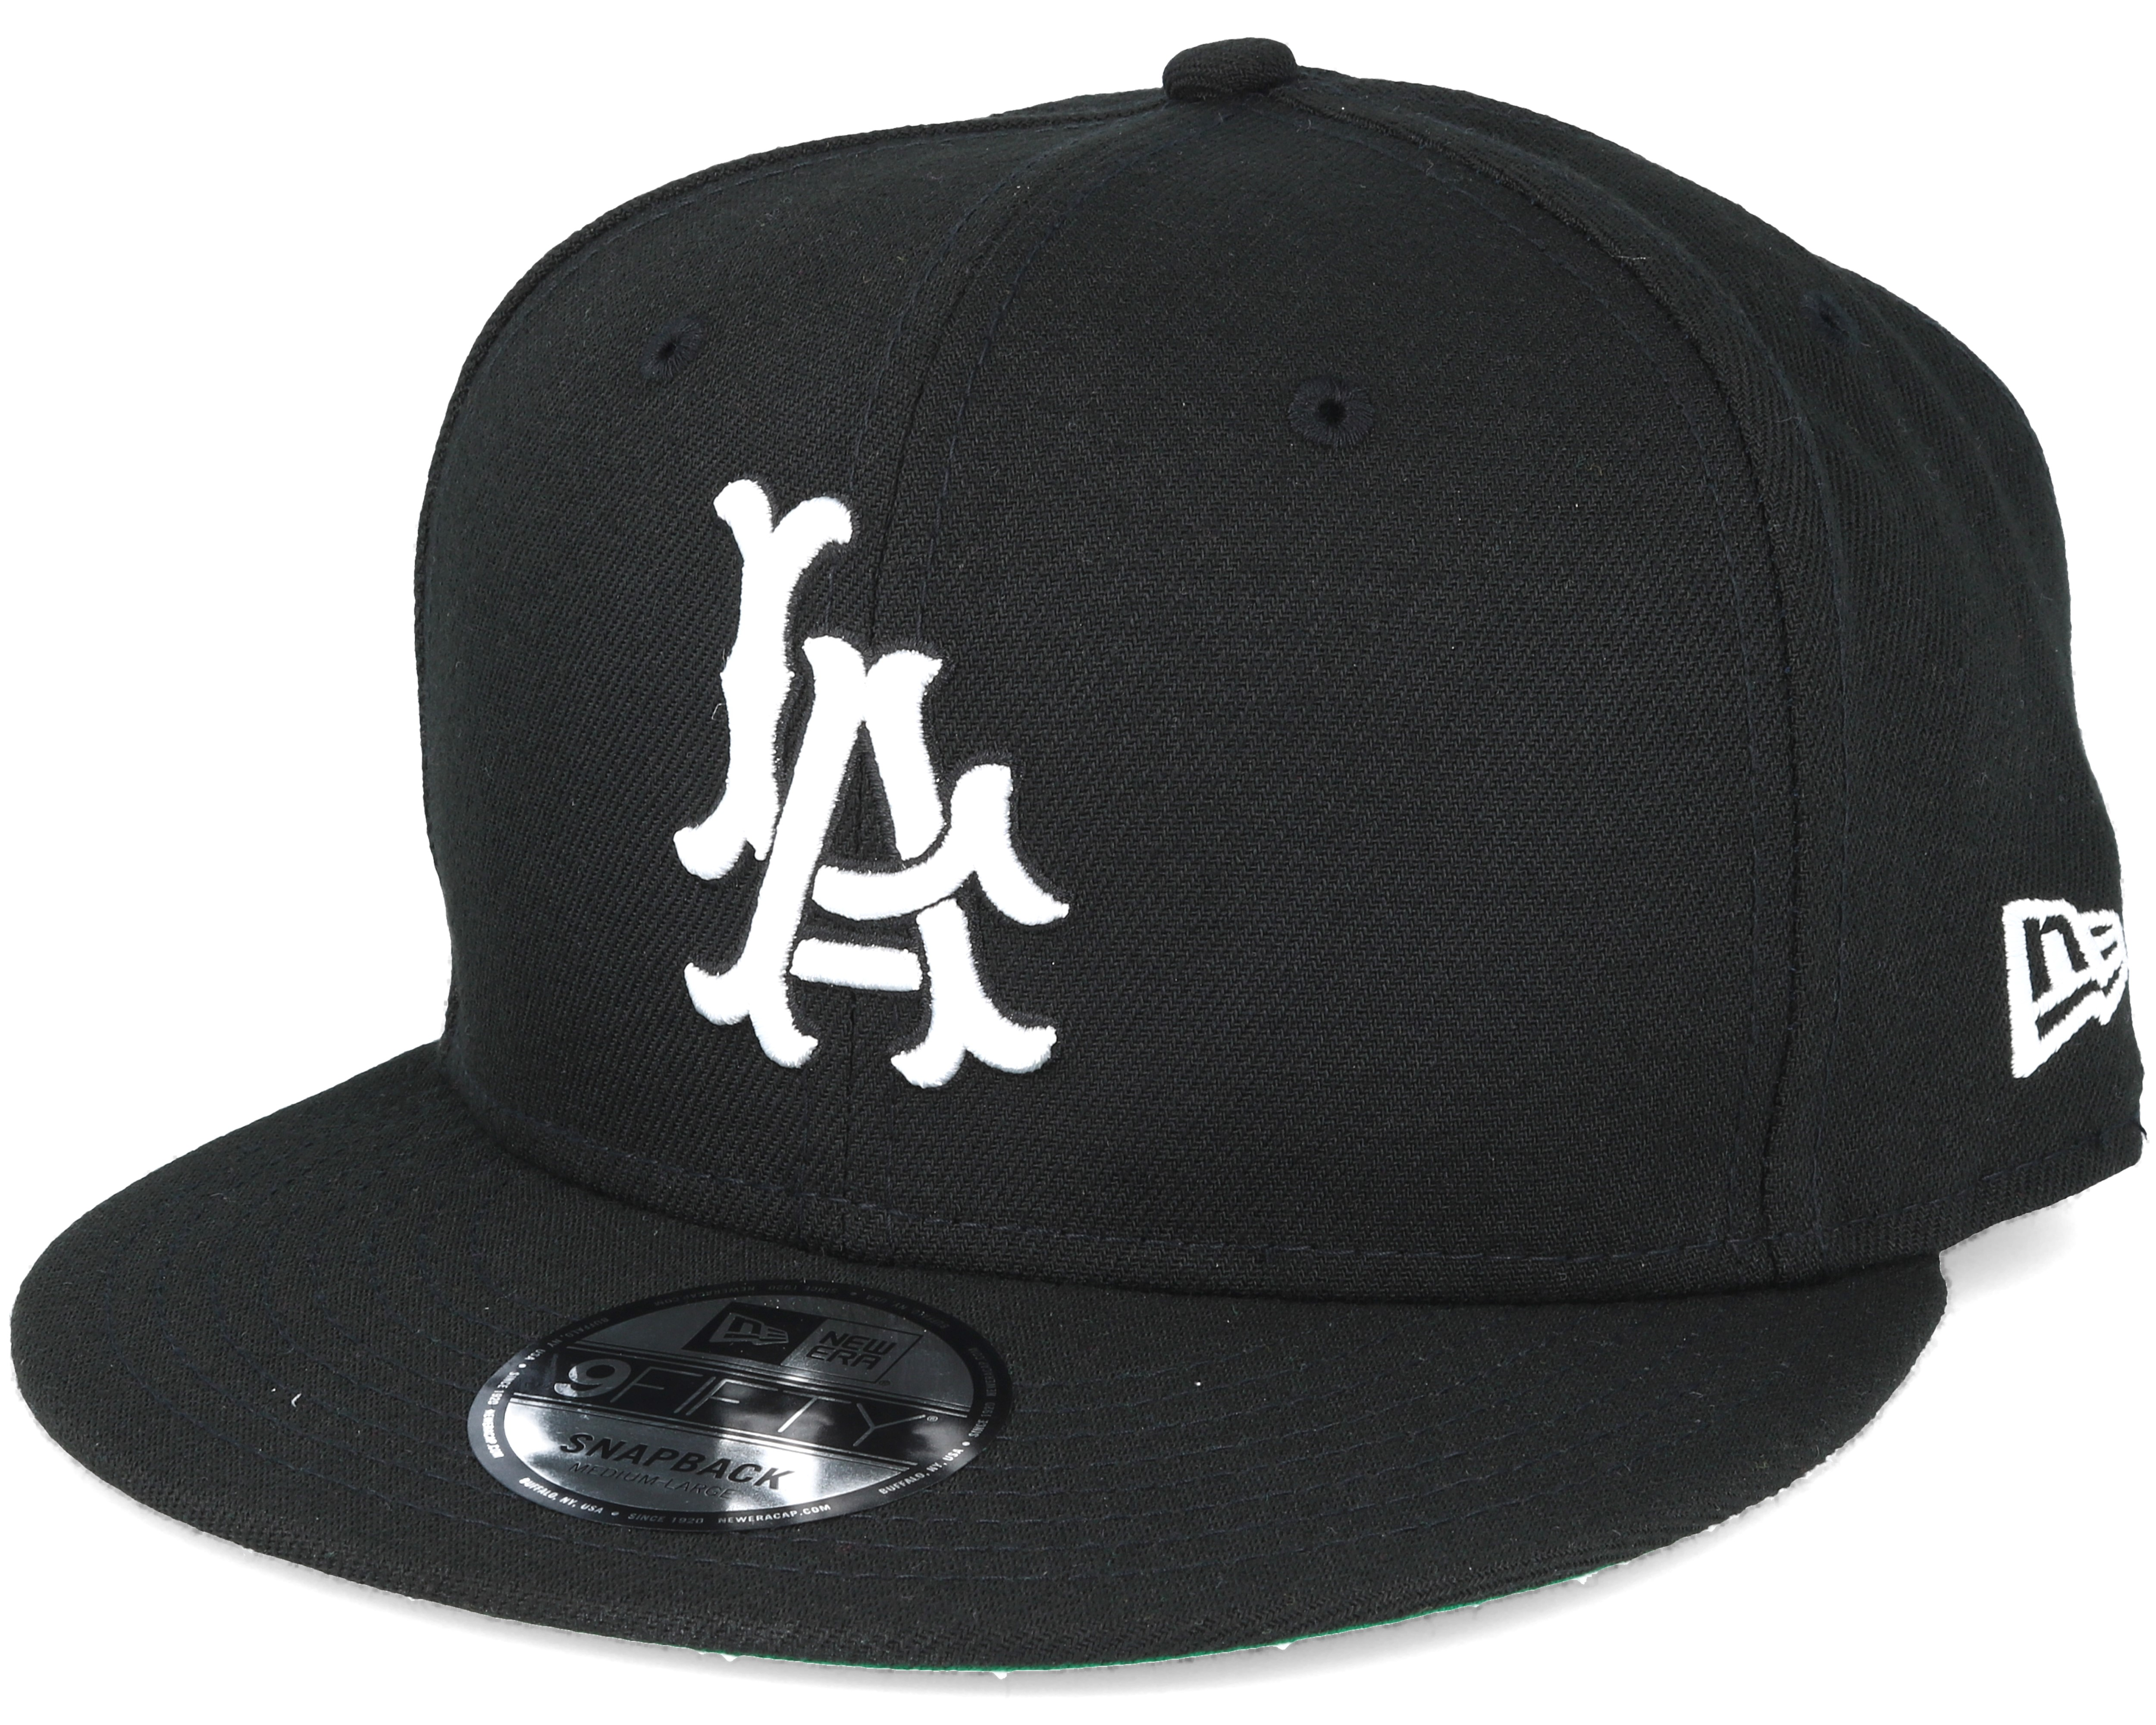 ... spain los angeles angels mlb cooperstown black snapback new era b26a8  15057 c1dd499b28a1